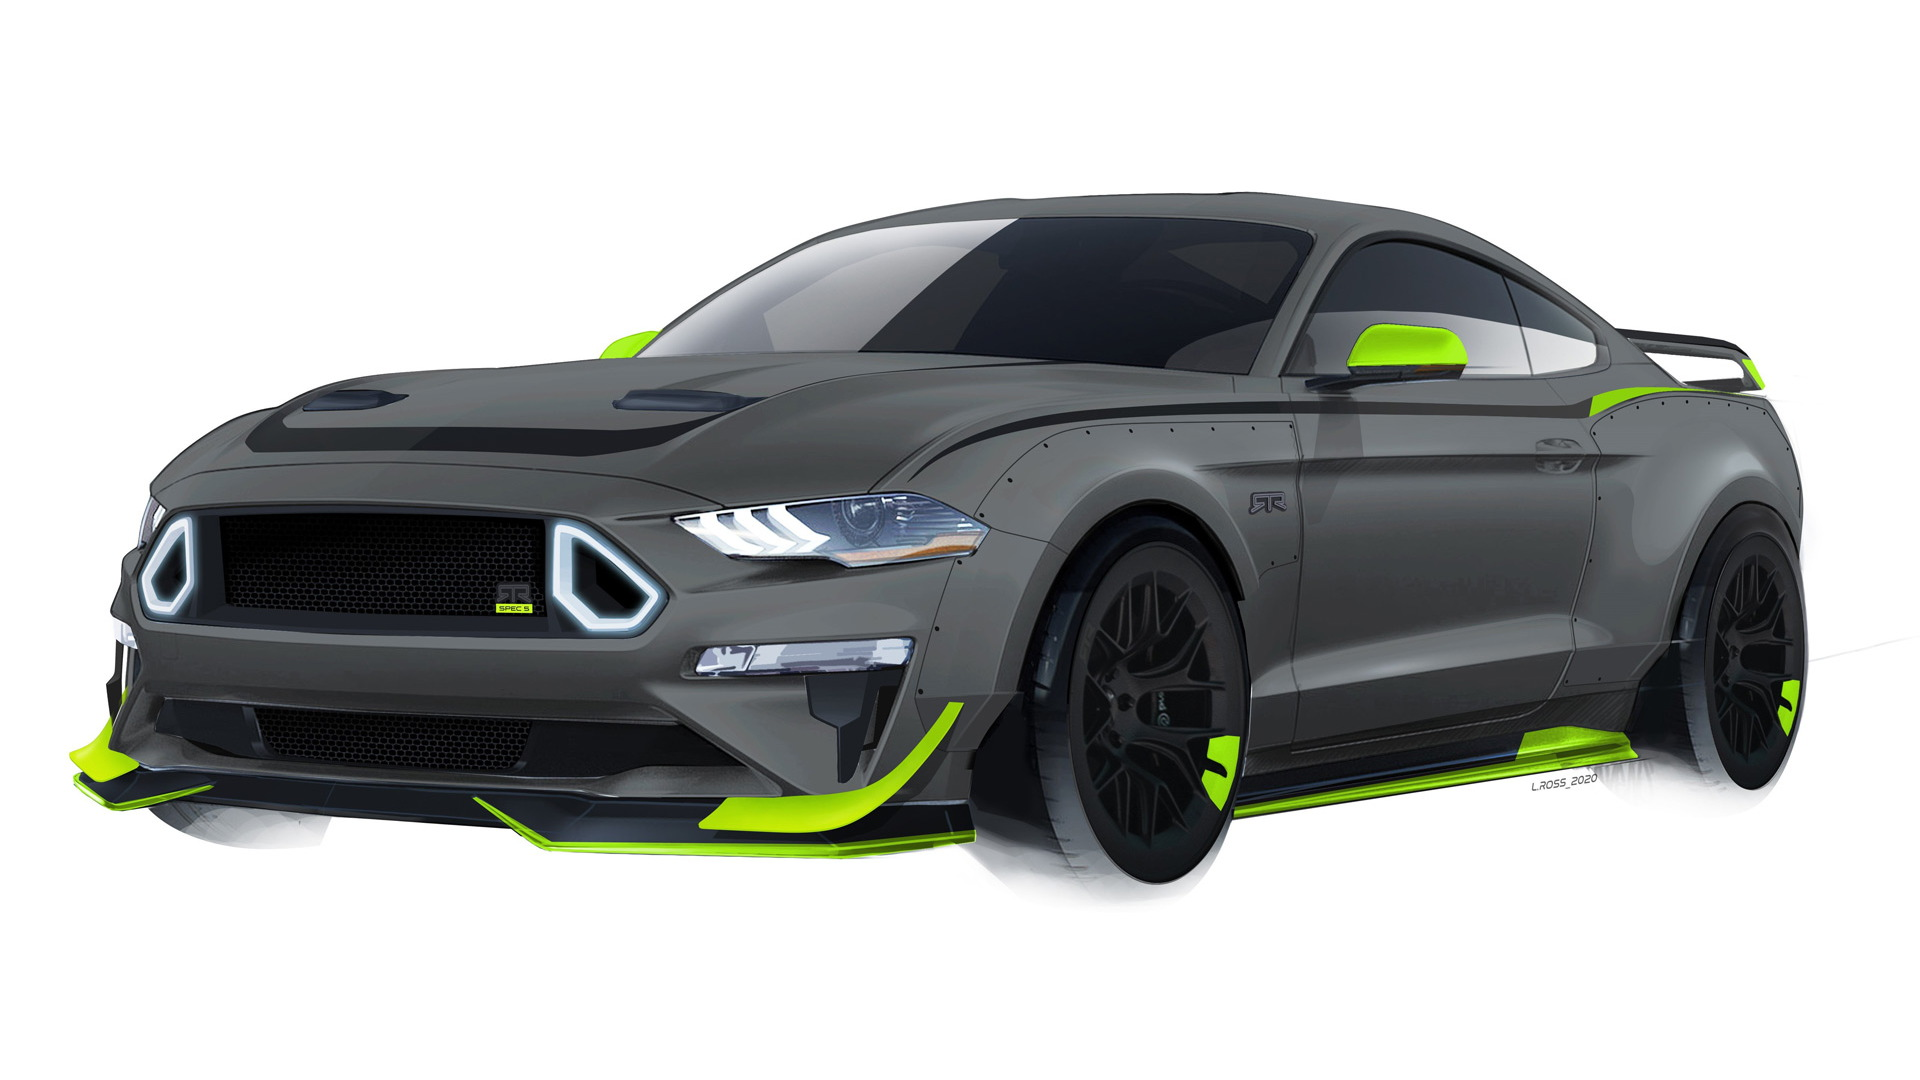 2020 Ford Mustang RTR Spec 5 10th Anniversary Edition